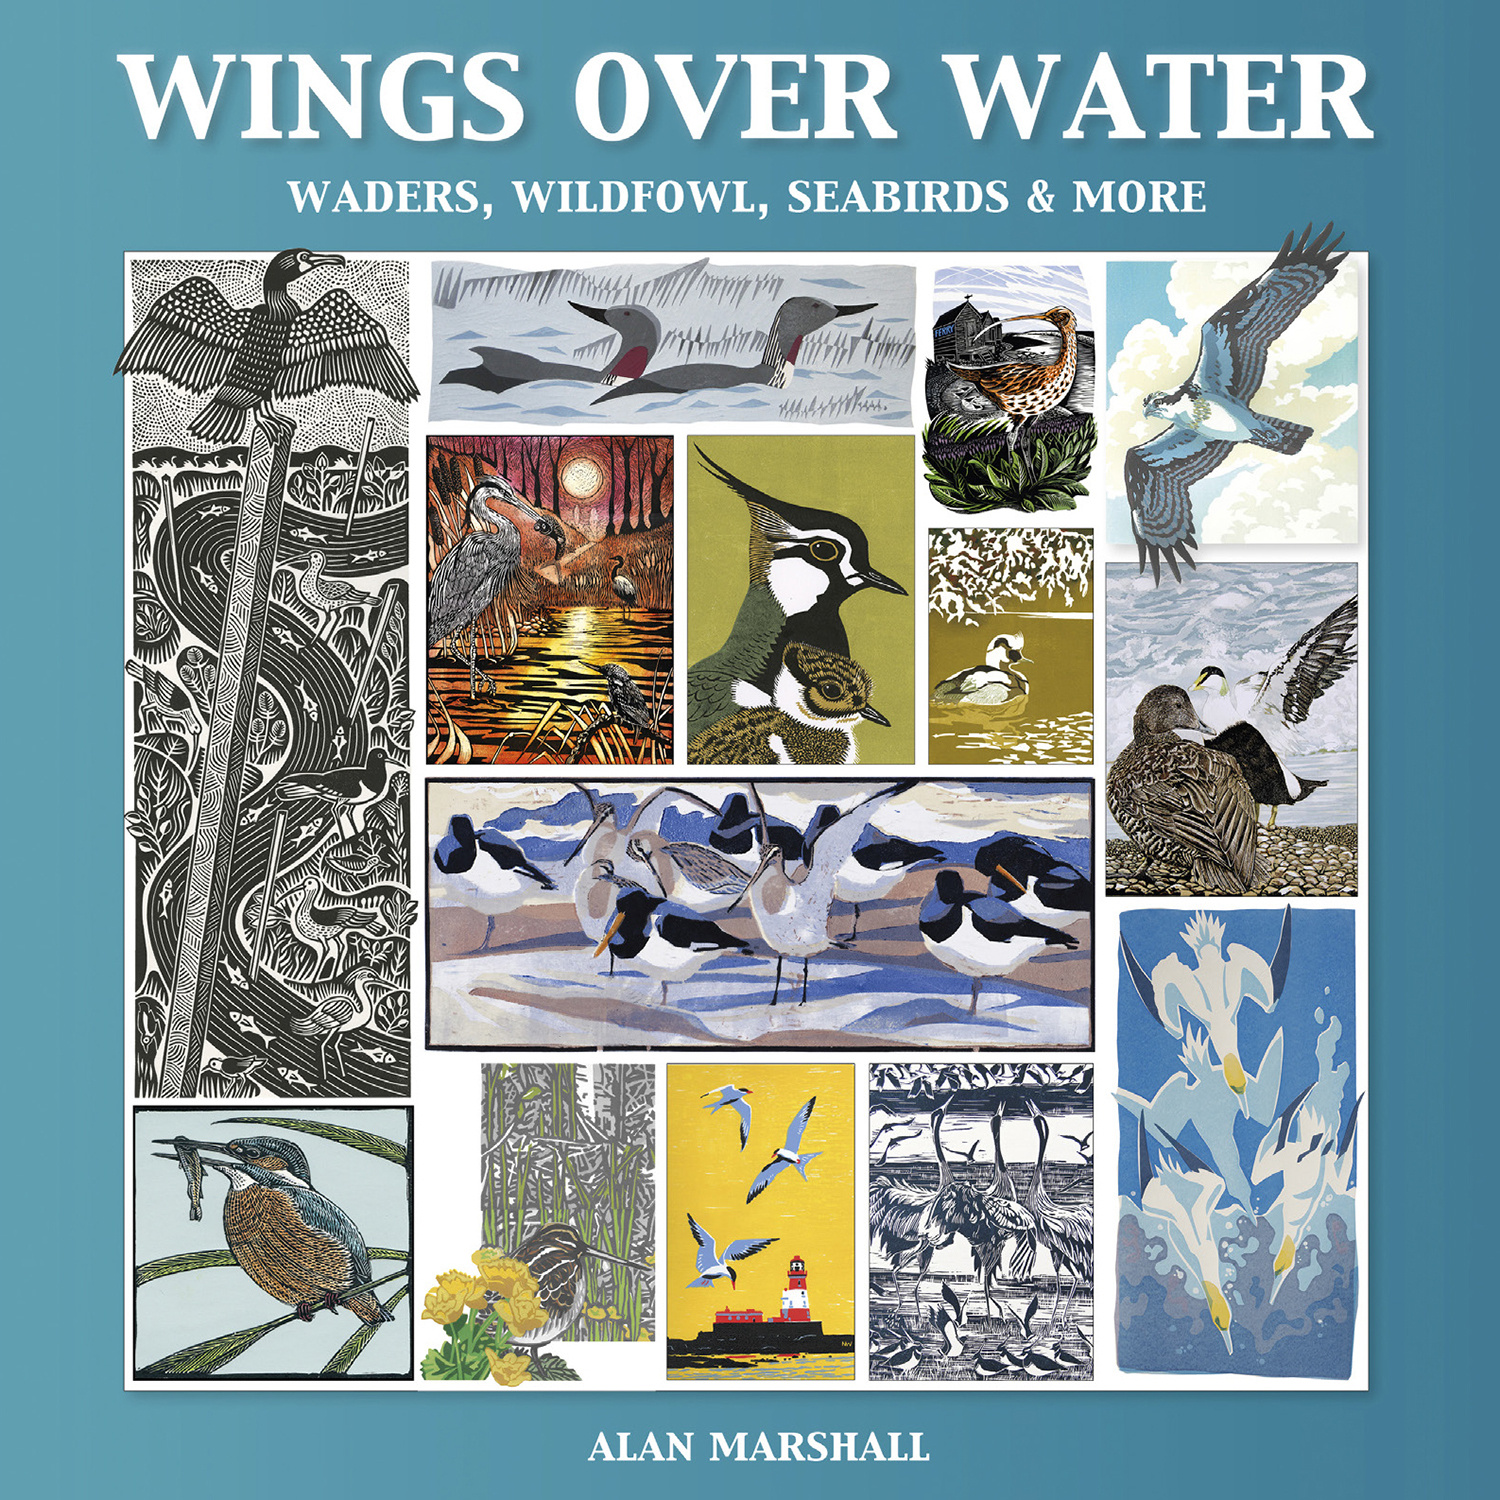 Wings over Water by Alan Marshall